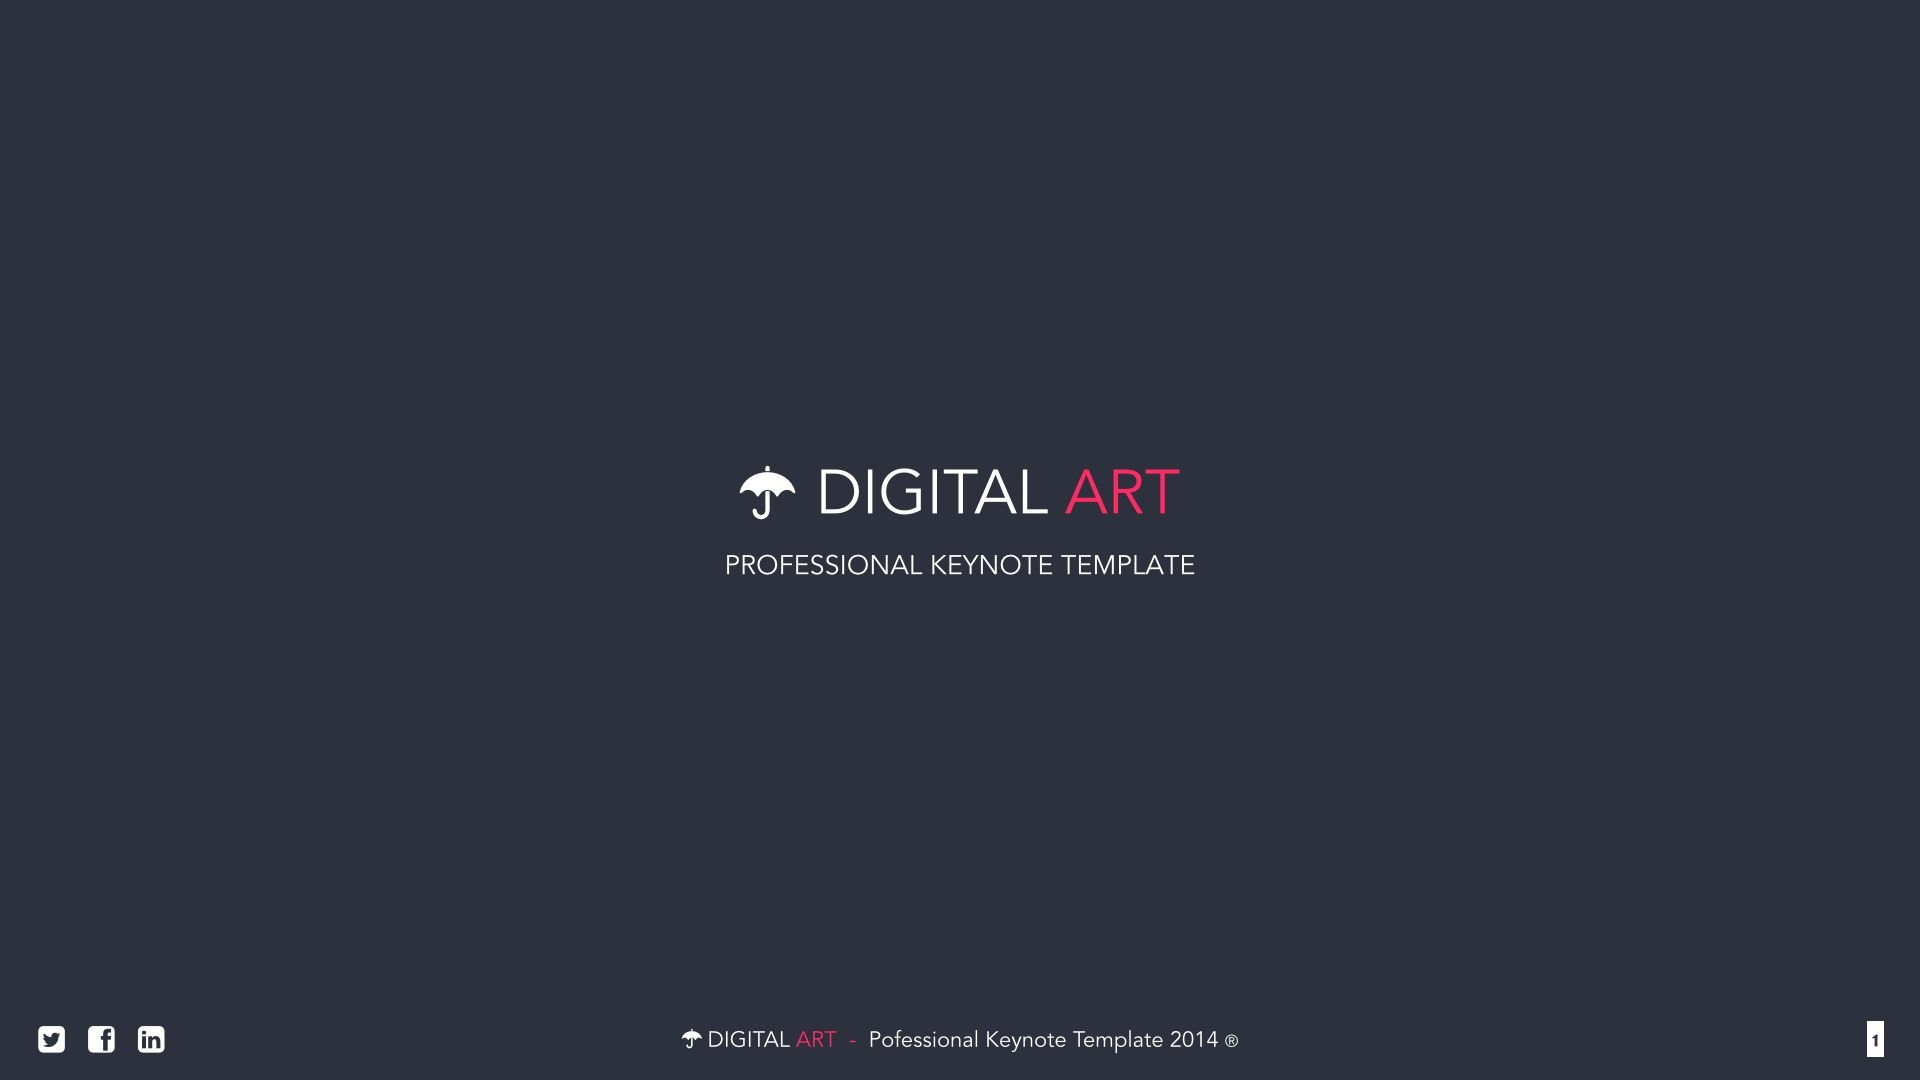 digital art - creative powerpoint templatevigitalart, Modern powerpoint